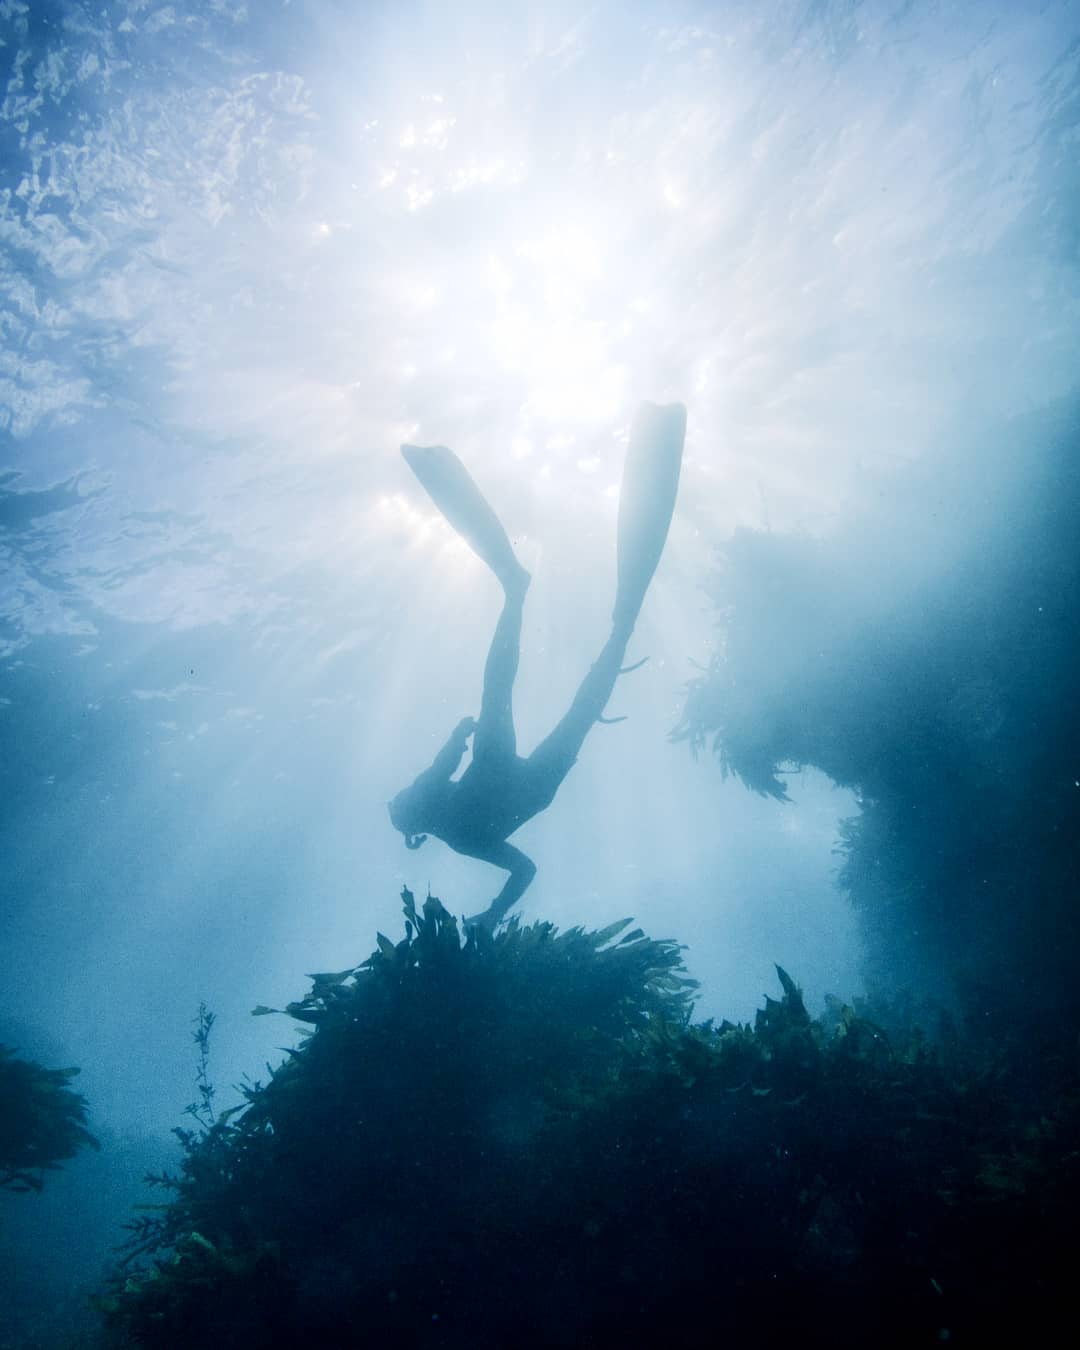 Silhouette of a freediver underwater